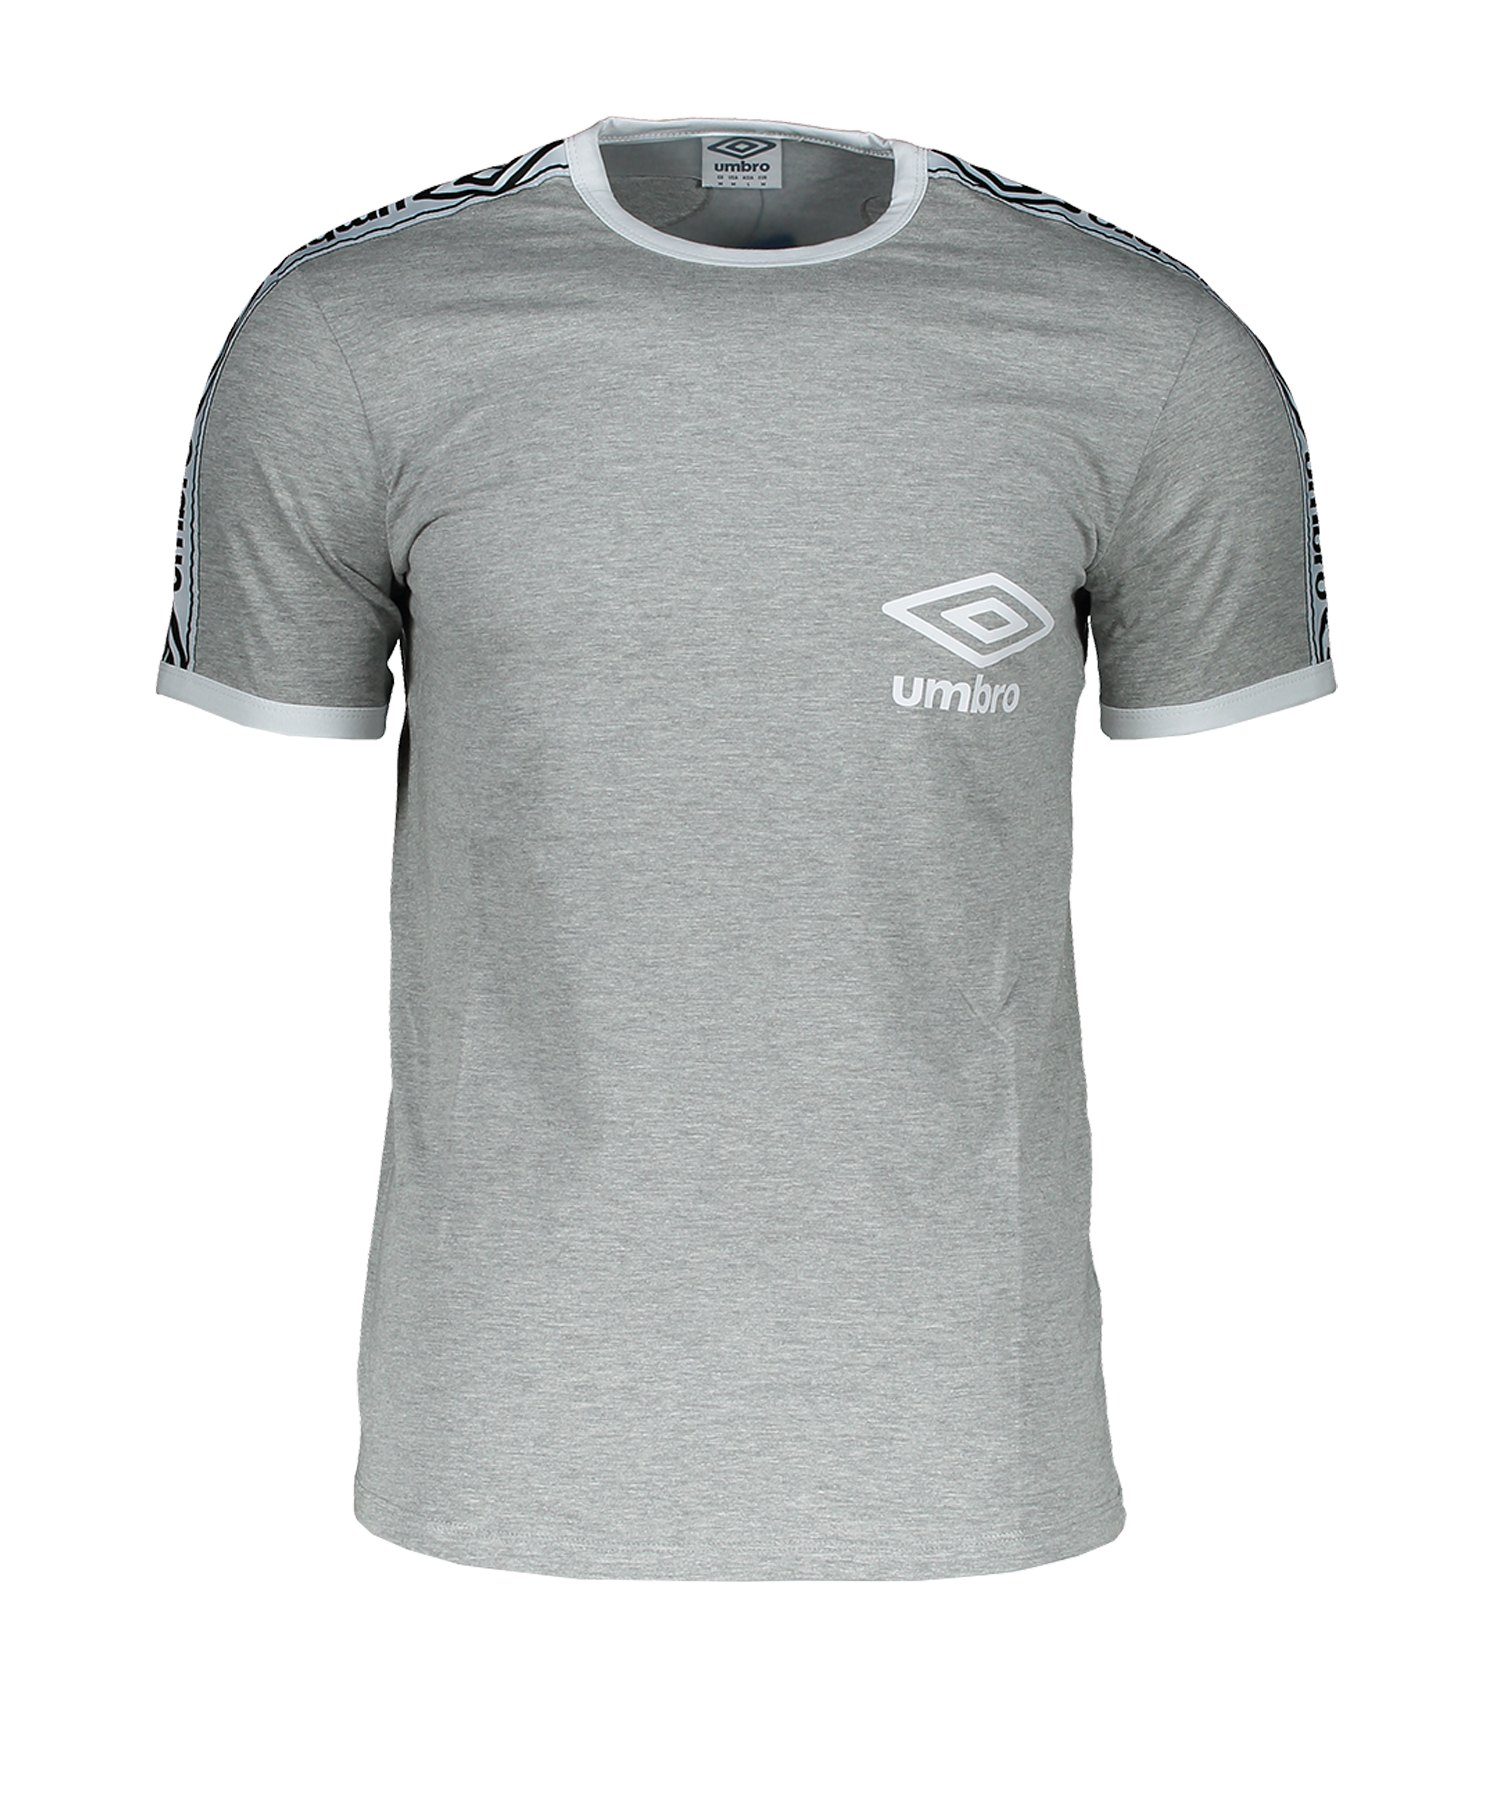 Umbro Taped Ringer T-Shirt Grau F263 - Grau